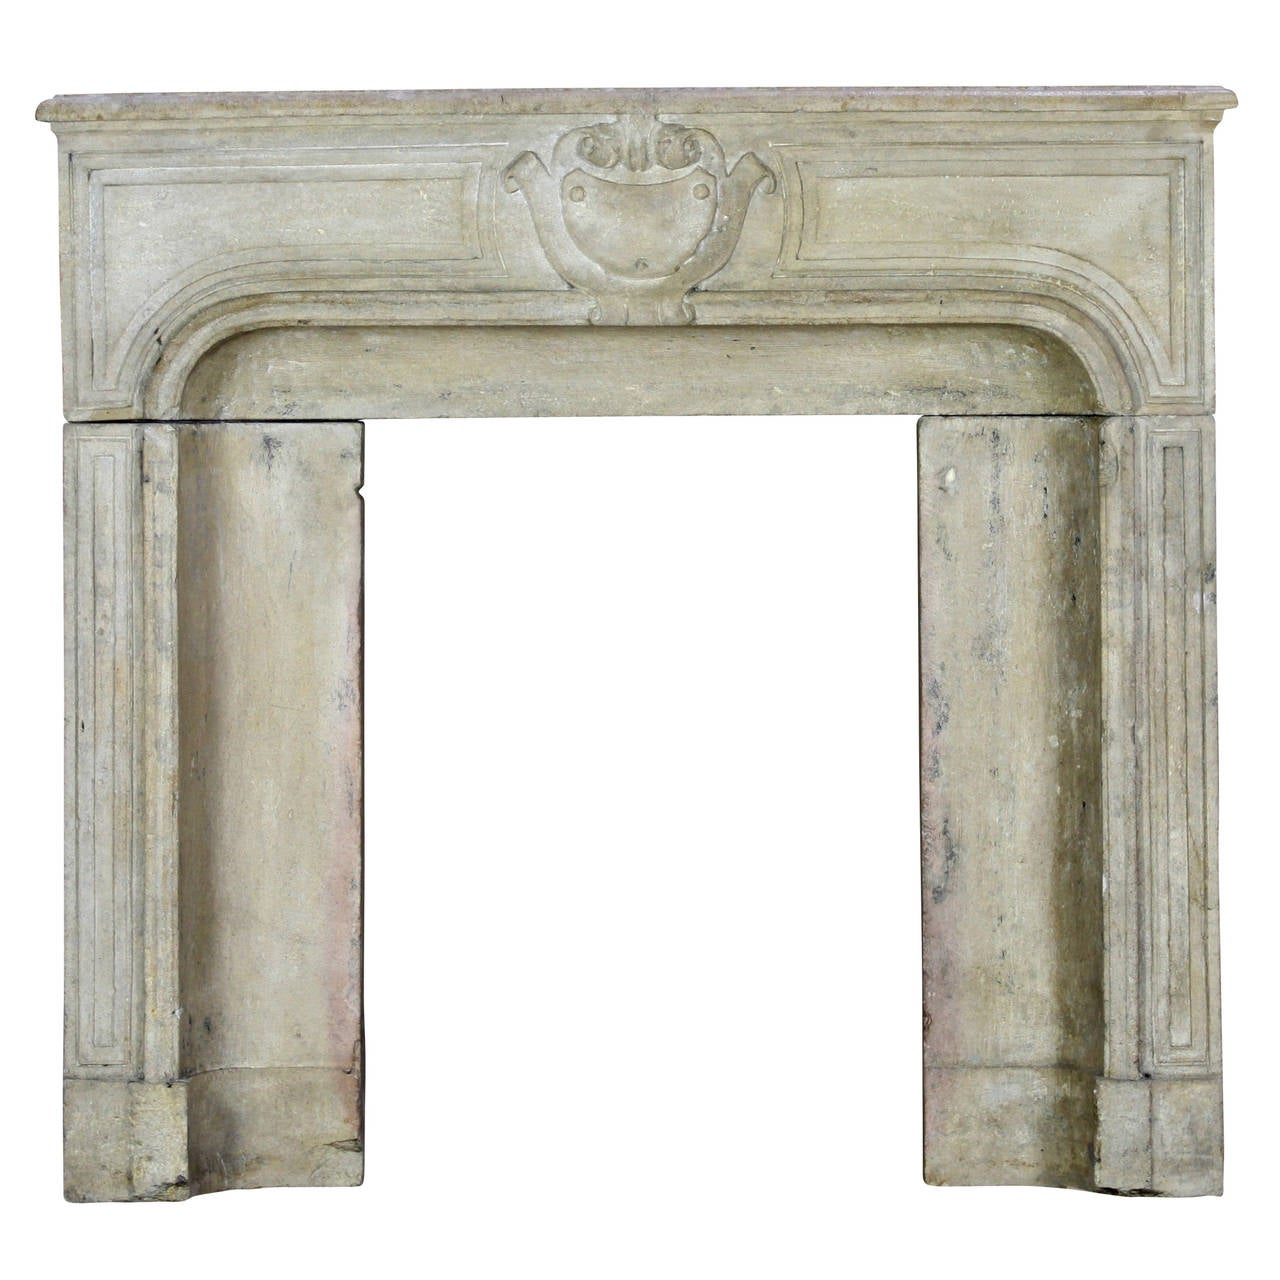 18th c limestone des vosges three solid block antique fireplace mantel 1 - Antique Fireplace Mantels